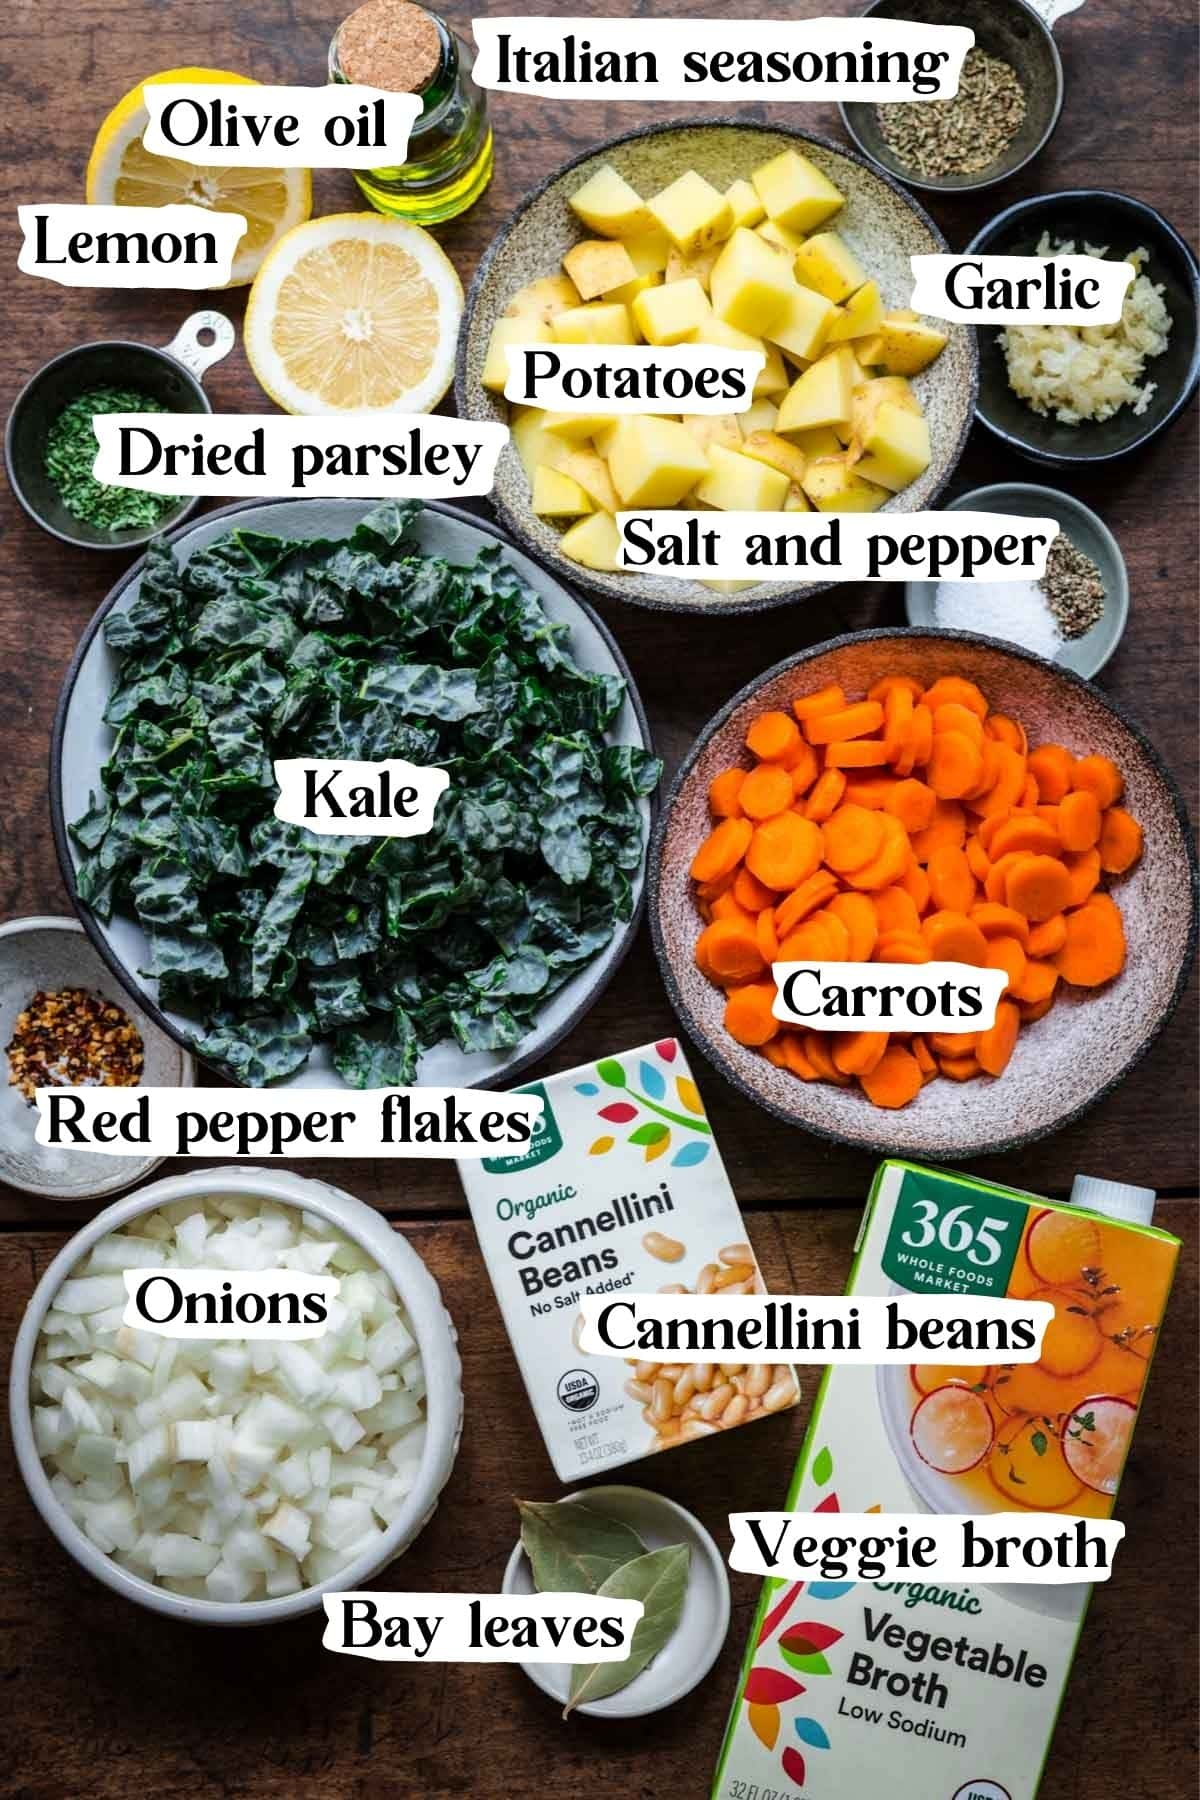 Overhead view of all ingredients, including veggie broth, kale, and white beans.